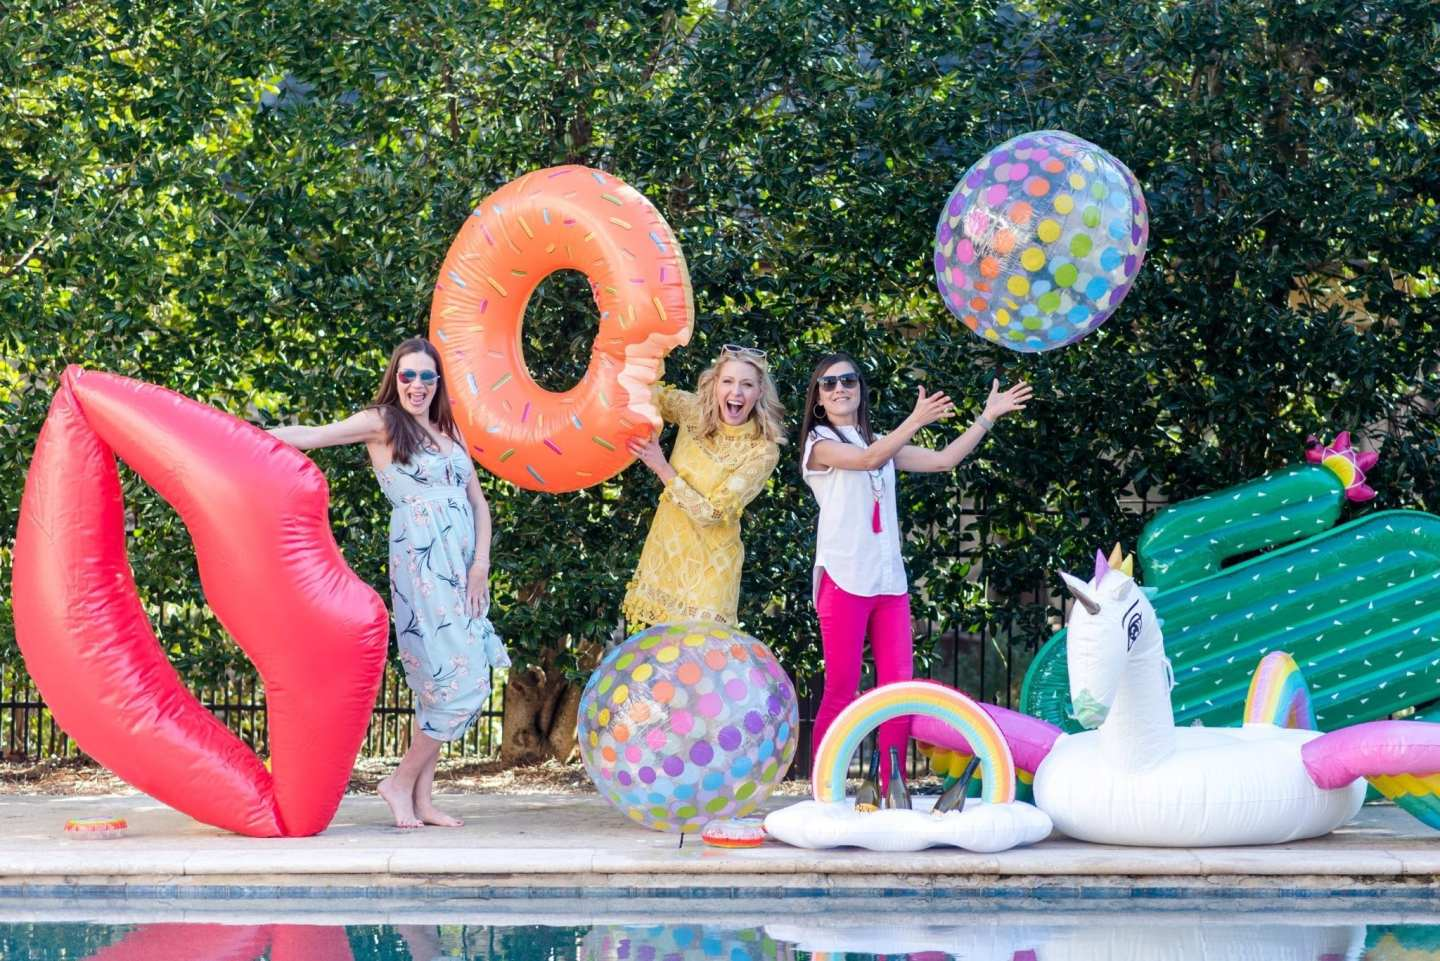 Giant inflatable pool floats! How to throw a fun summer party. Tips for music playlists and more!